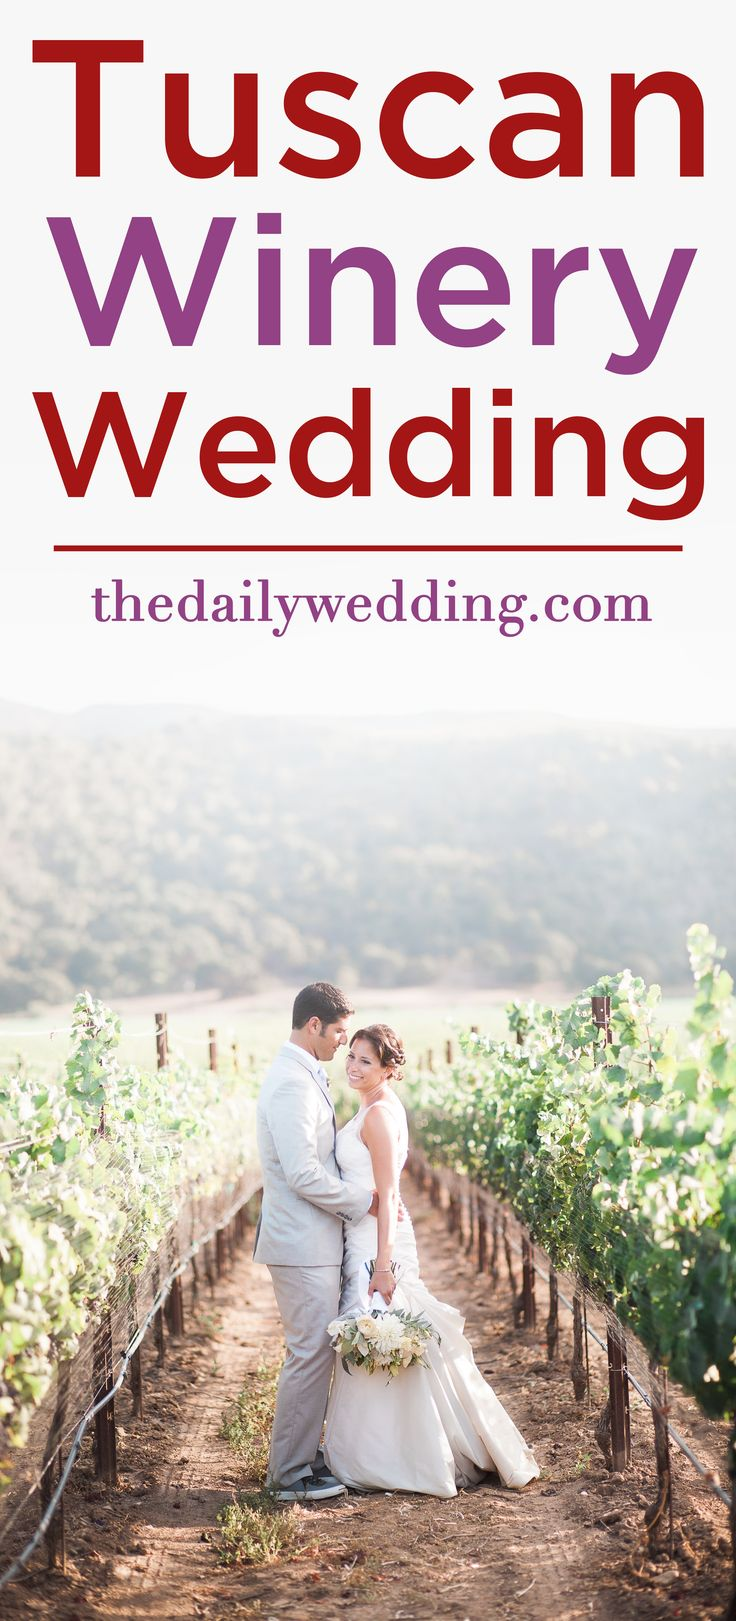 What a lovely wedding! The winery wedding of our dreams! View the full wedding here: http://thedailywedding.com/2015/12/14/tuscan-winery-wedding-iliana-ryan/